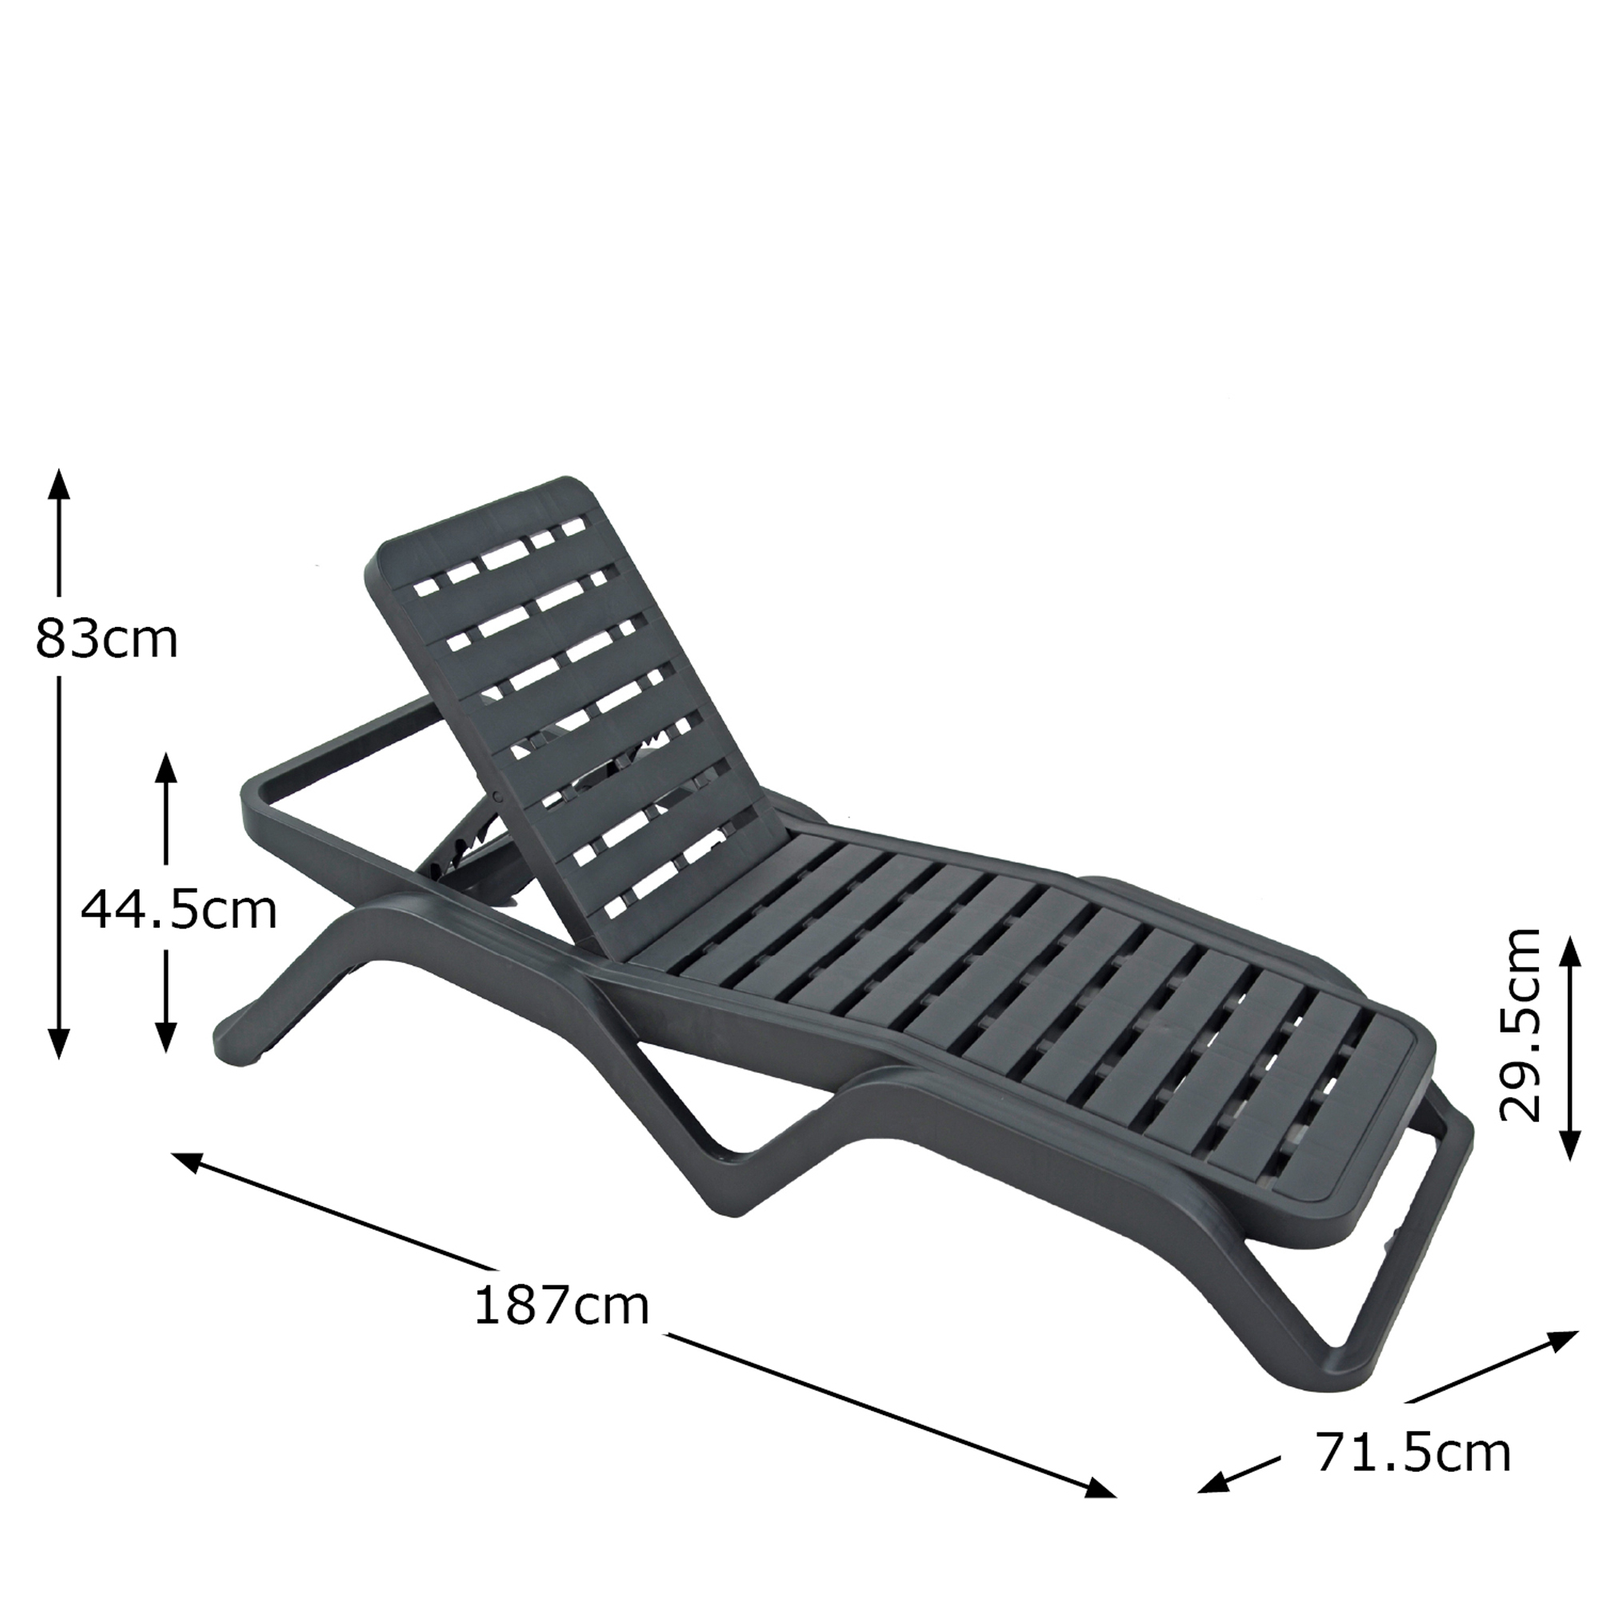 Trabella Scirocco Sun Lounger in Anthracite